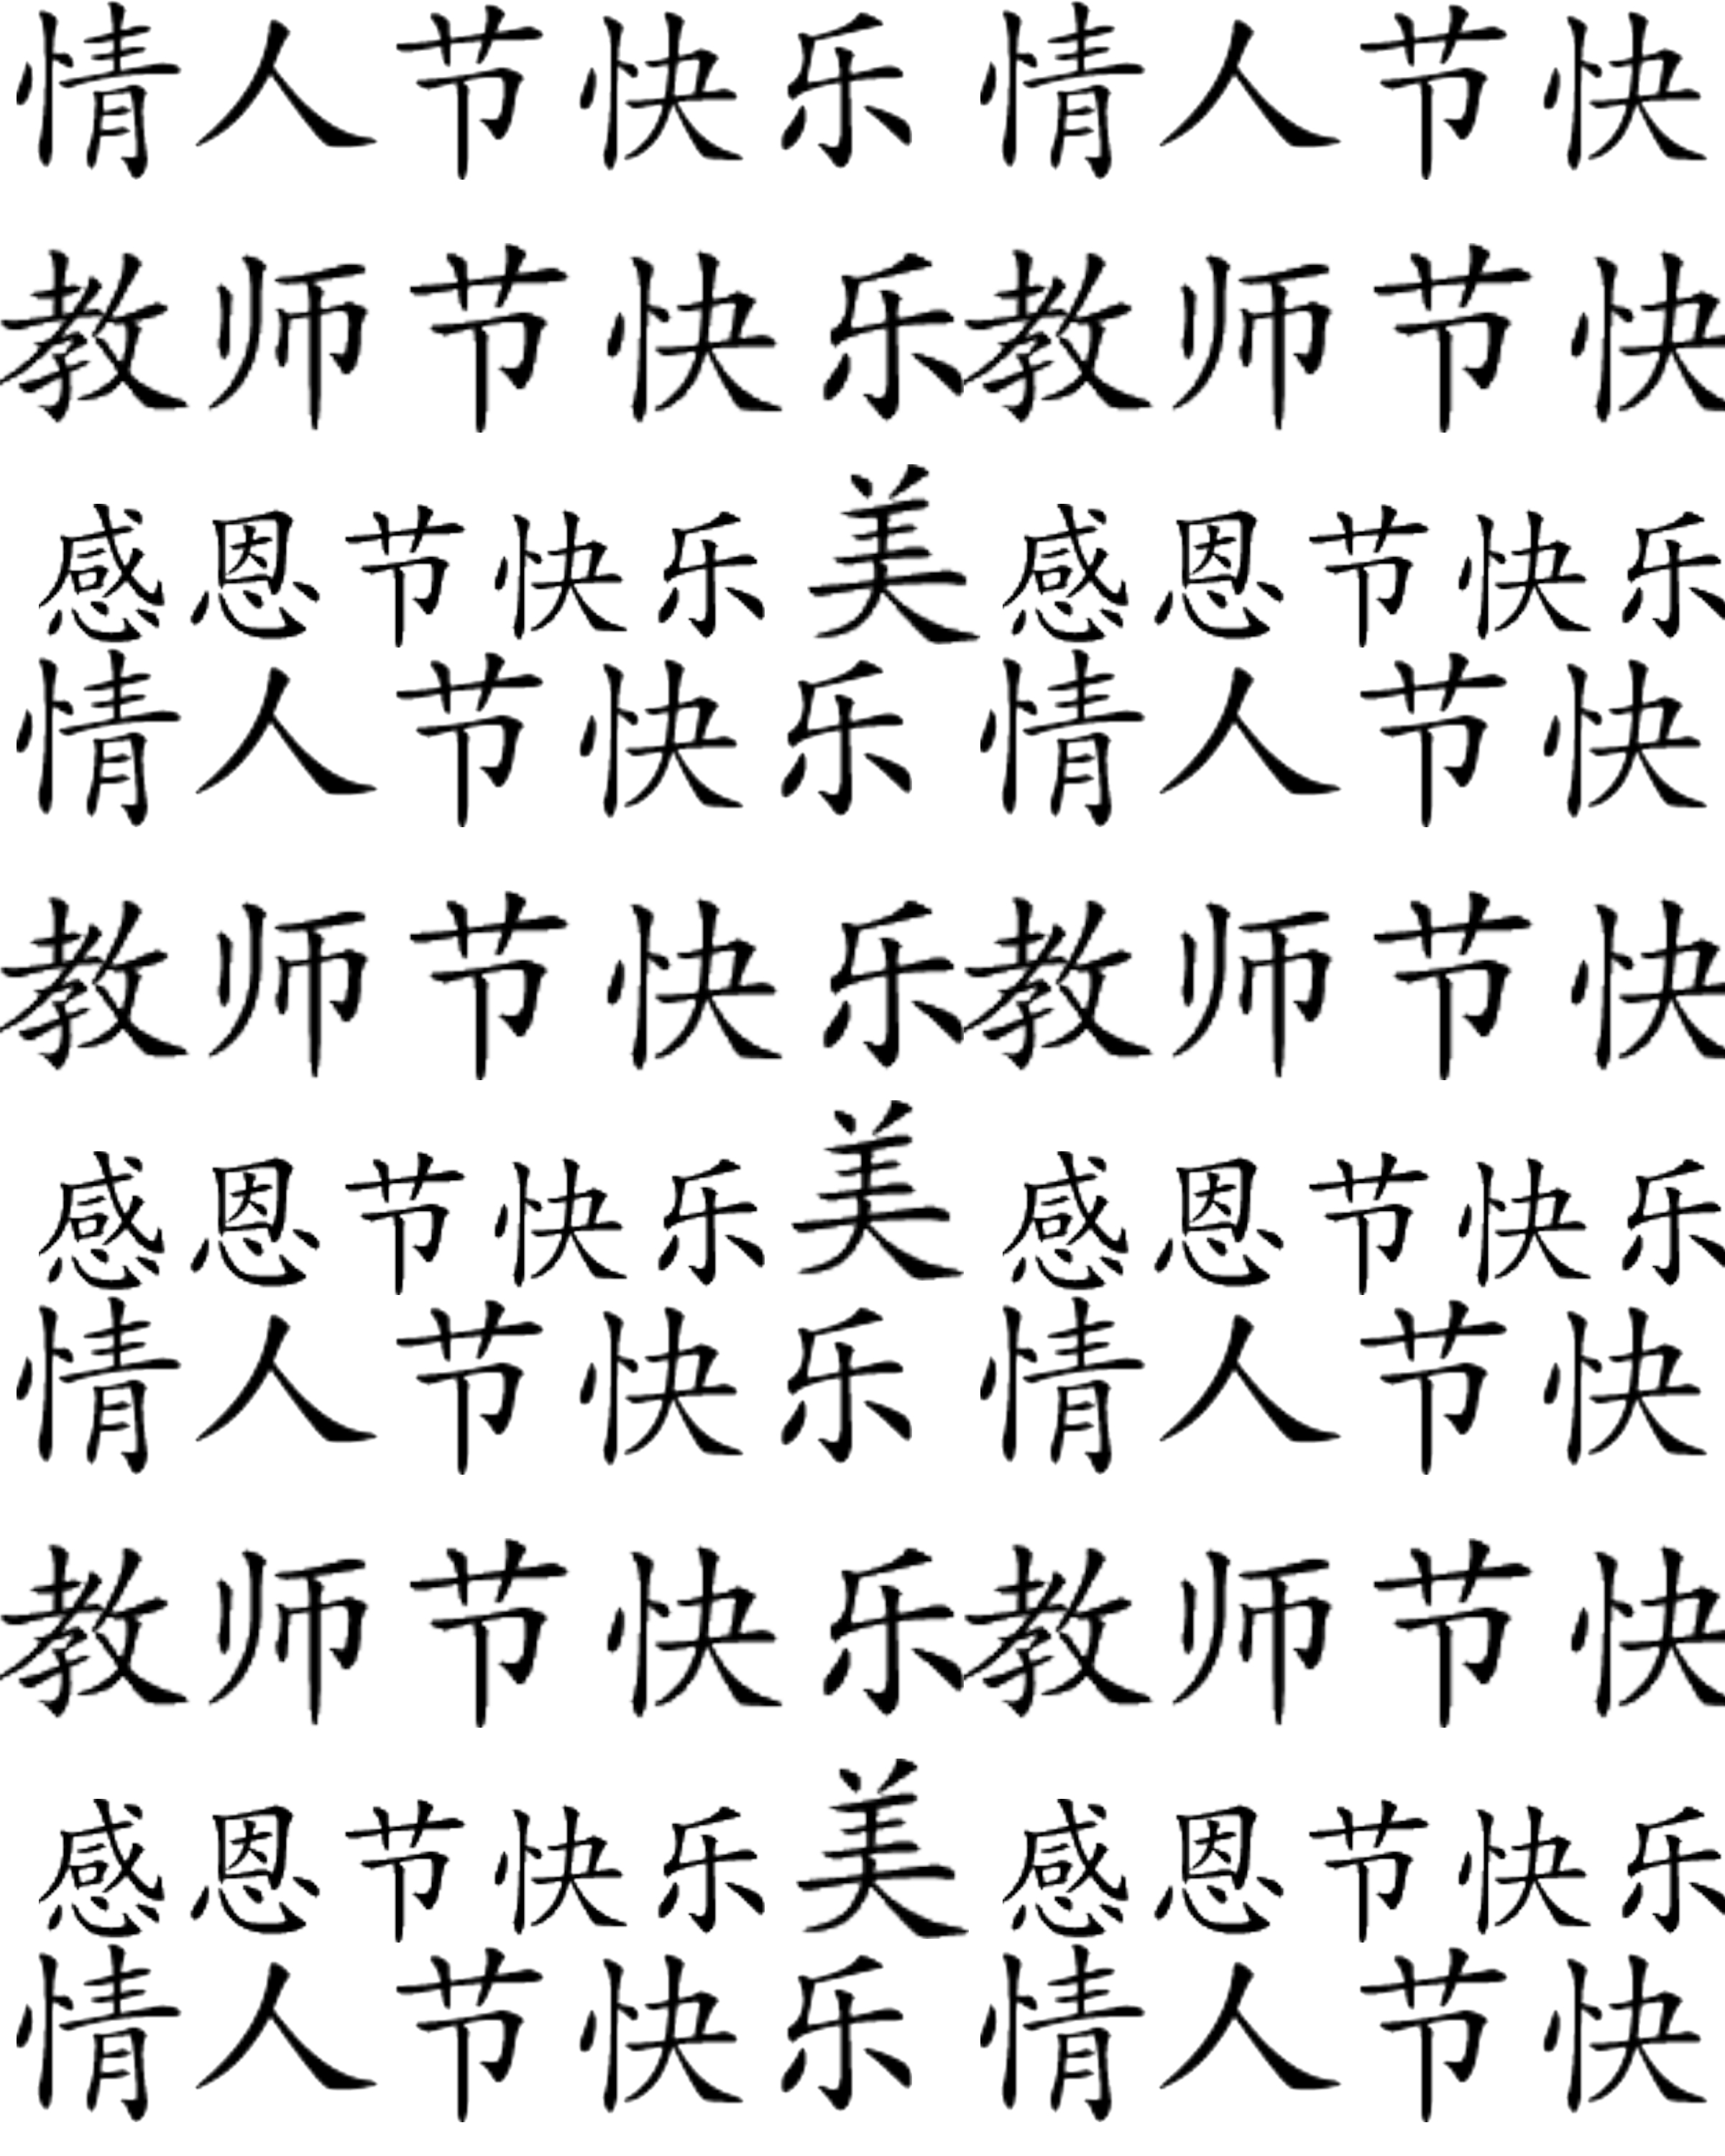 how to say china in chinese writing